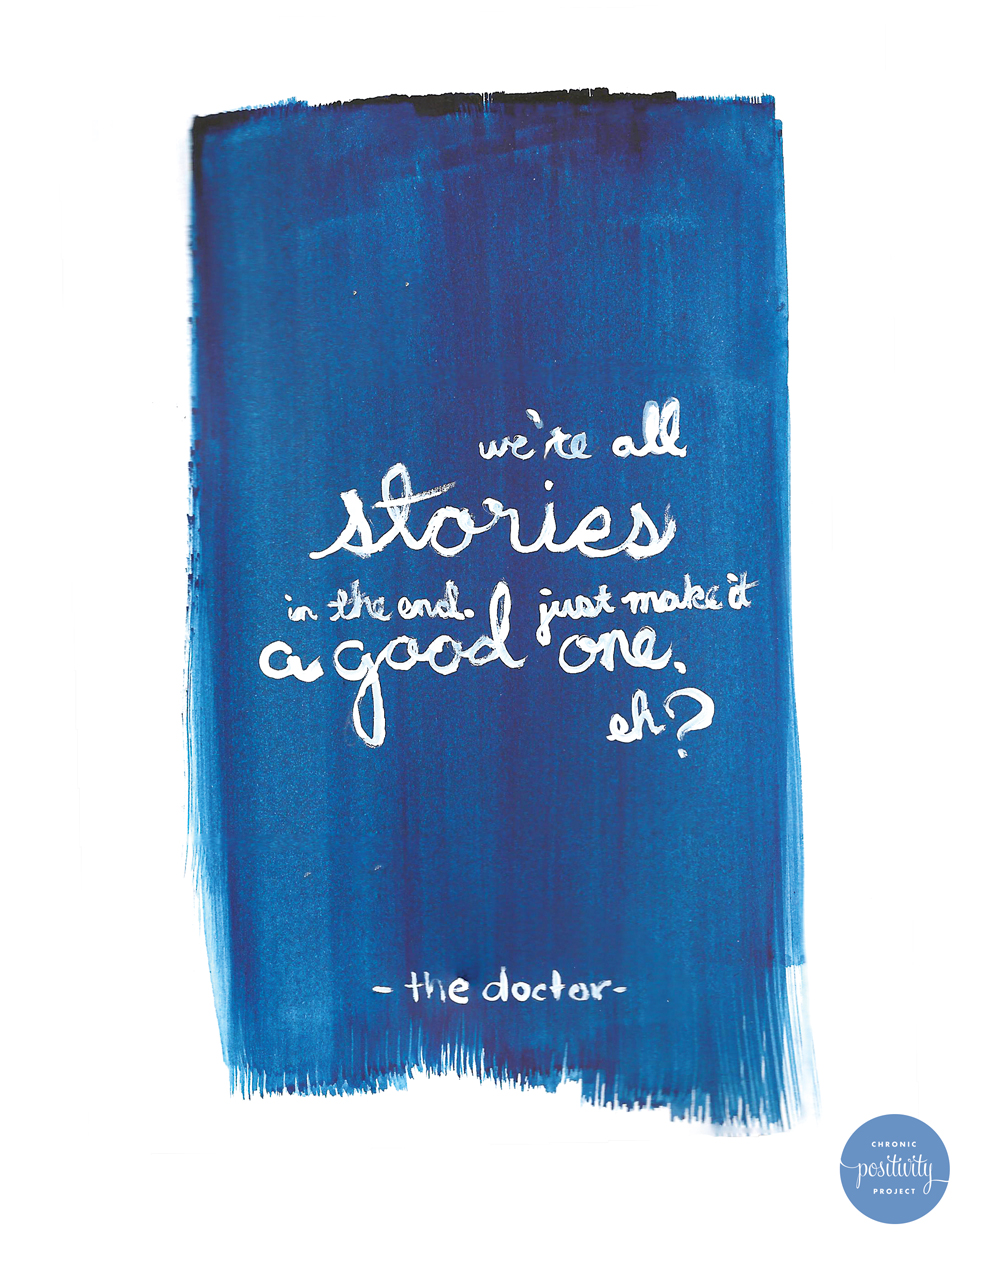 """We're all stories in the end, so make it a good one, eh?"" A quote from the Doctor 